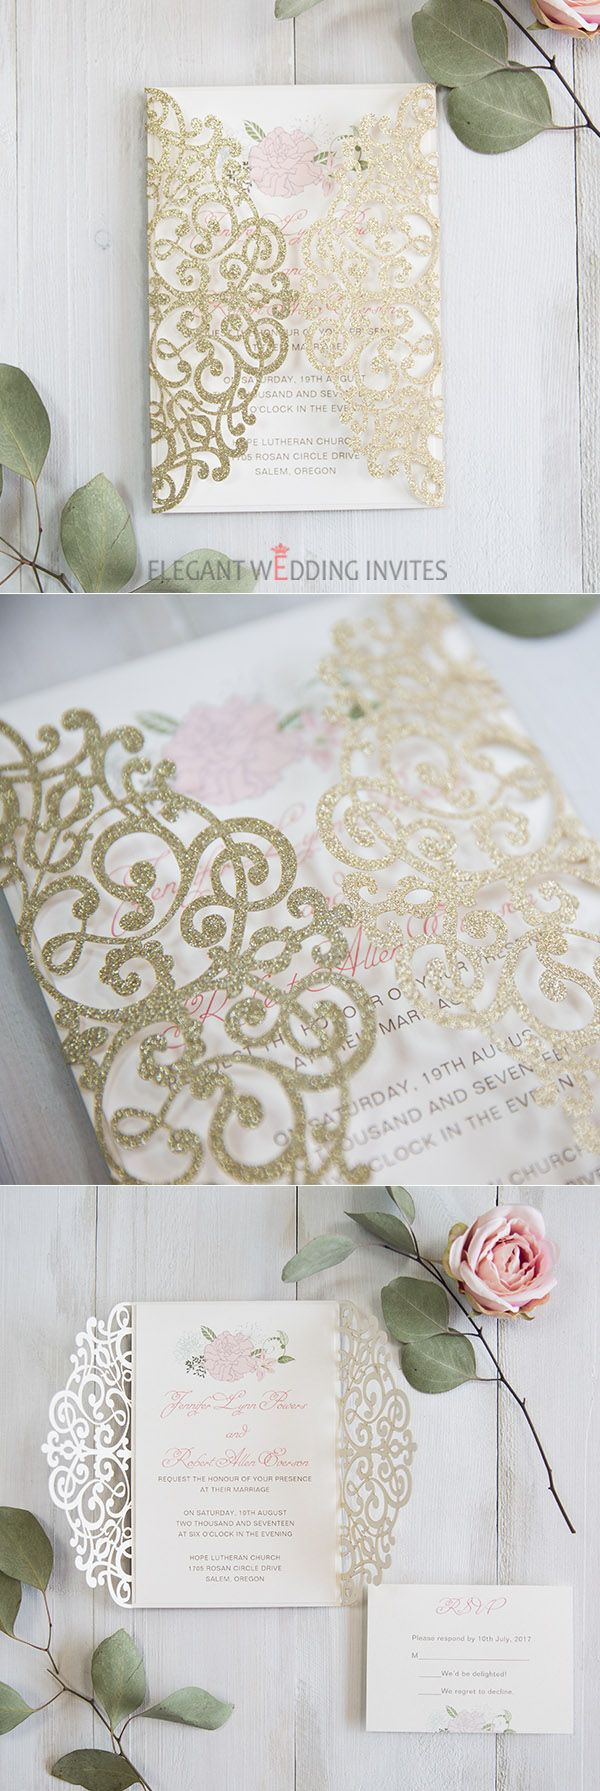 luxury pale gold and blush pink floral